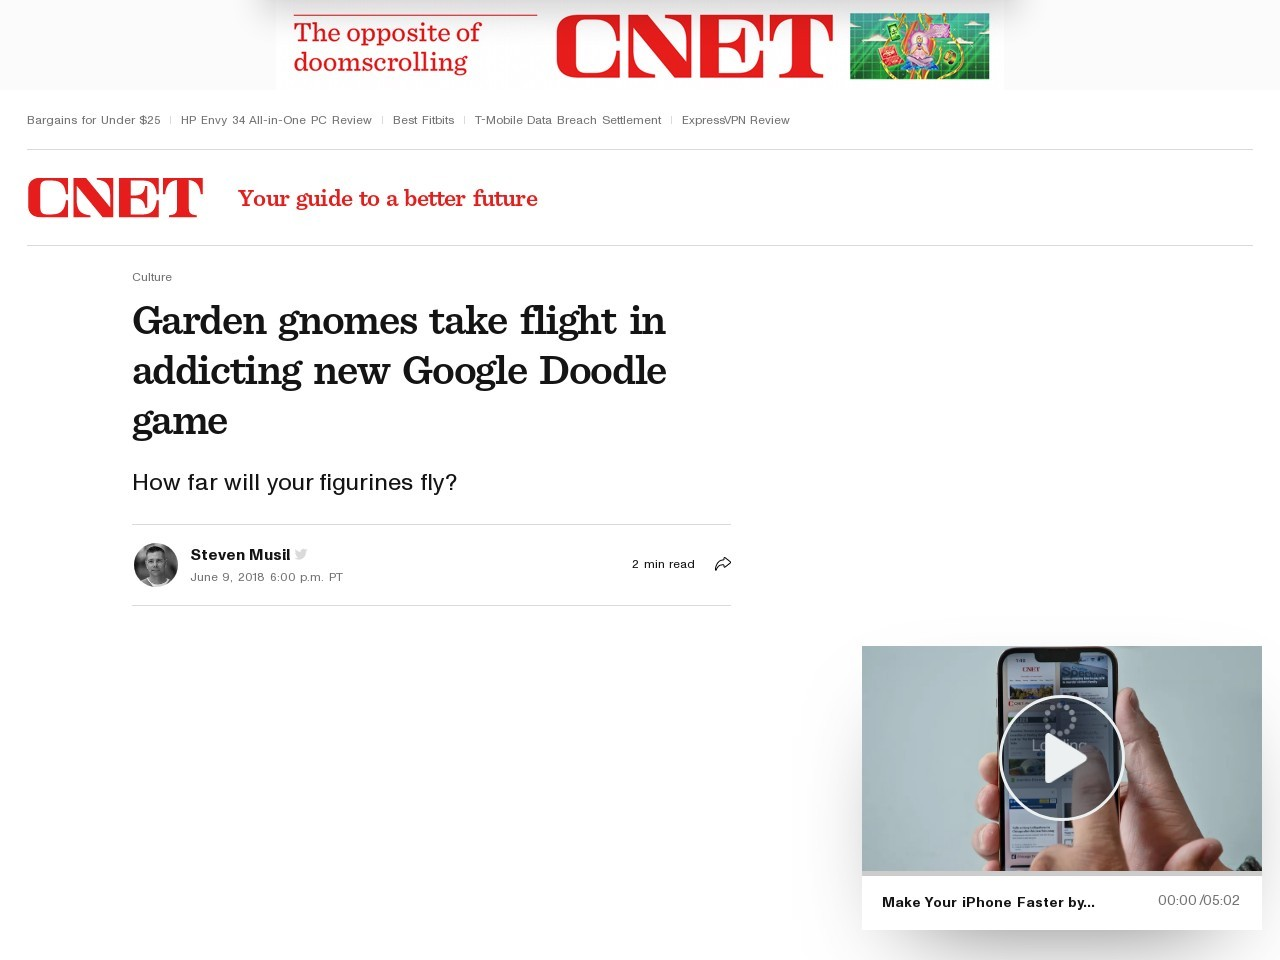 Garden gnomes take flight in addicting new Google Doodle game     – CNET